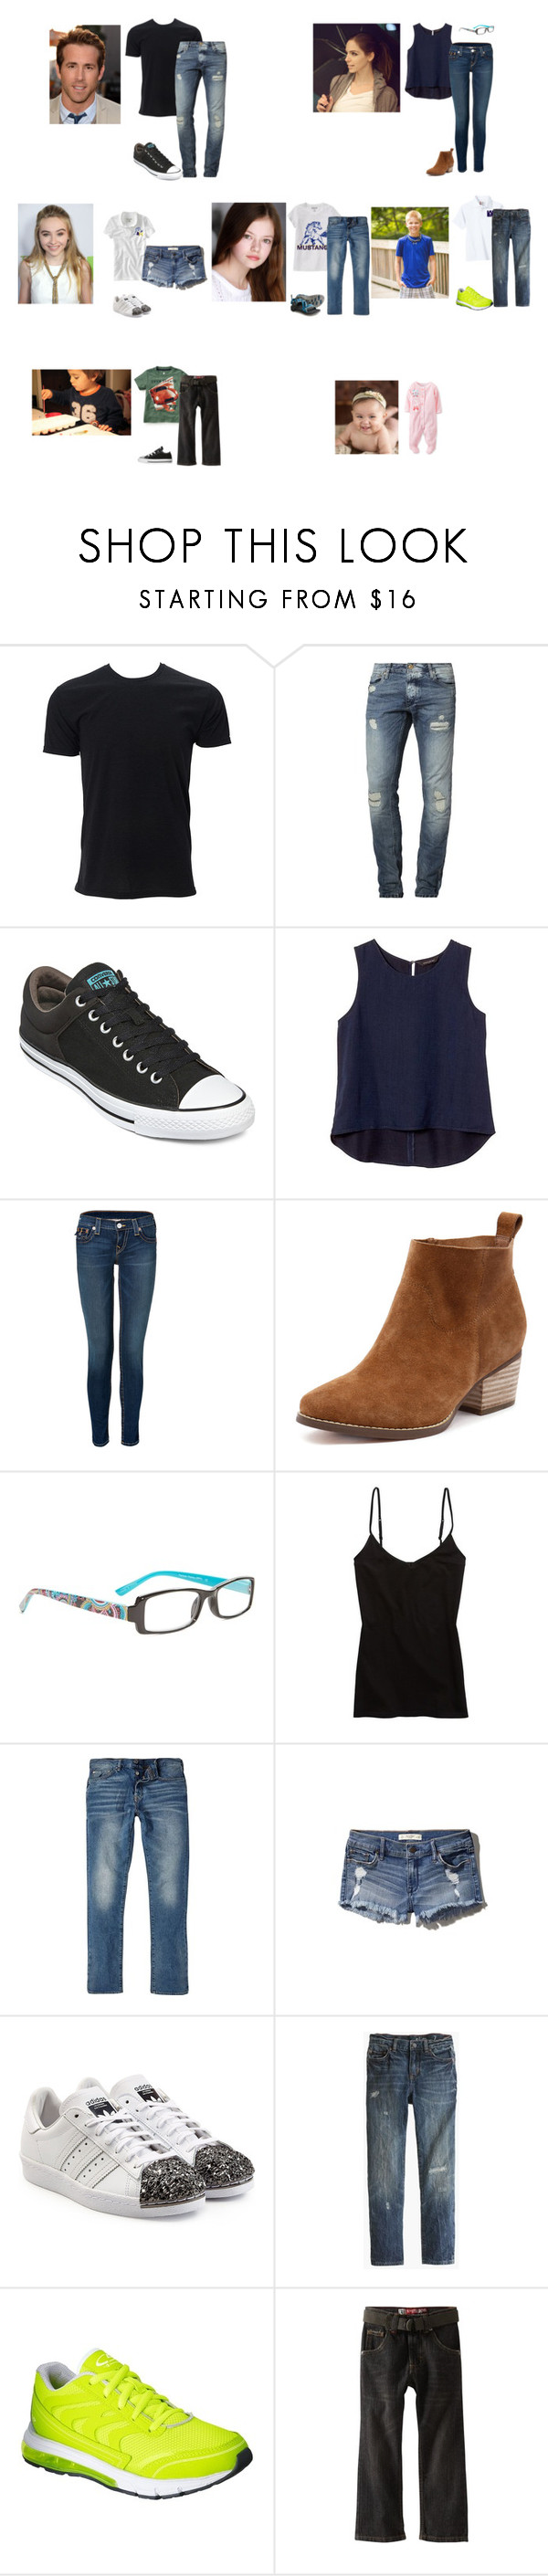 """The Hope family"" by the-hope-family ❤ liked on Polyvore featuring Jack & Jones, Converse, Banana Republic, True Religion, Vera Bradley, Aerie, River Island, Chaco, Abercrombie & Fitch and adidas Originals"